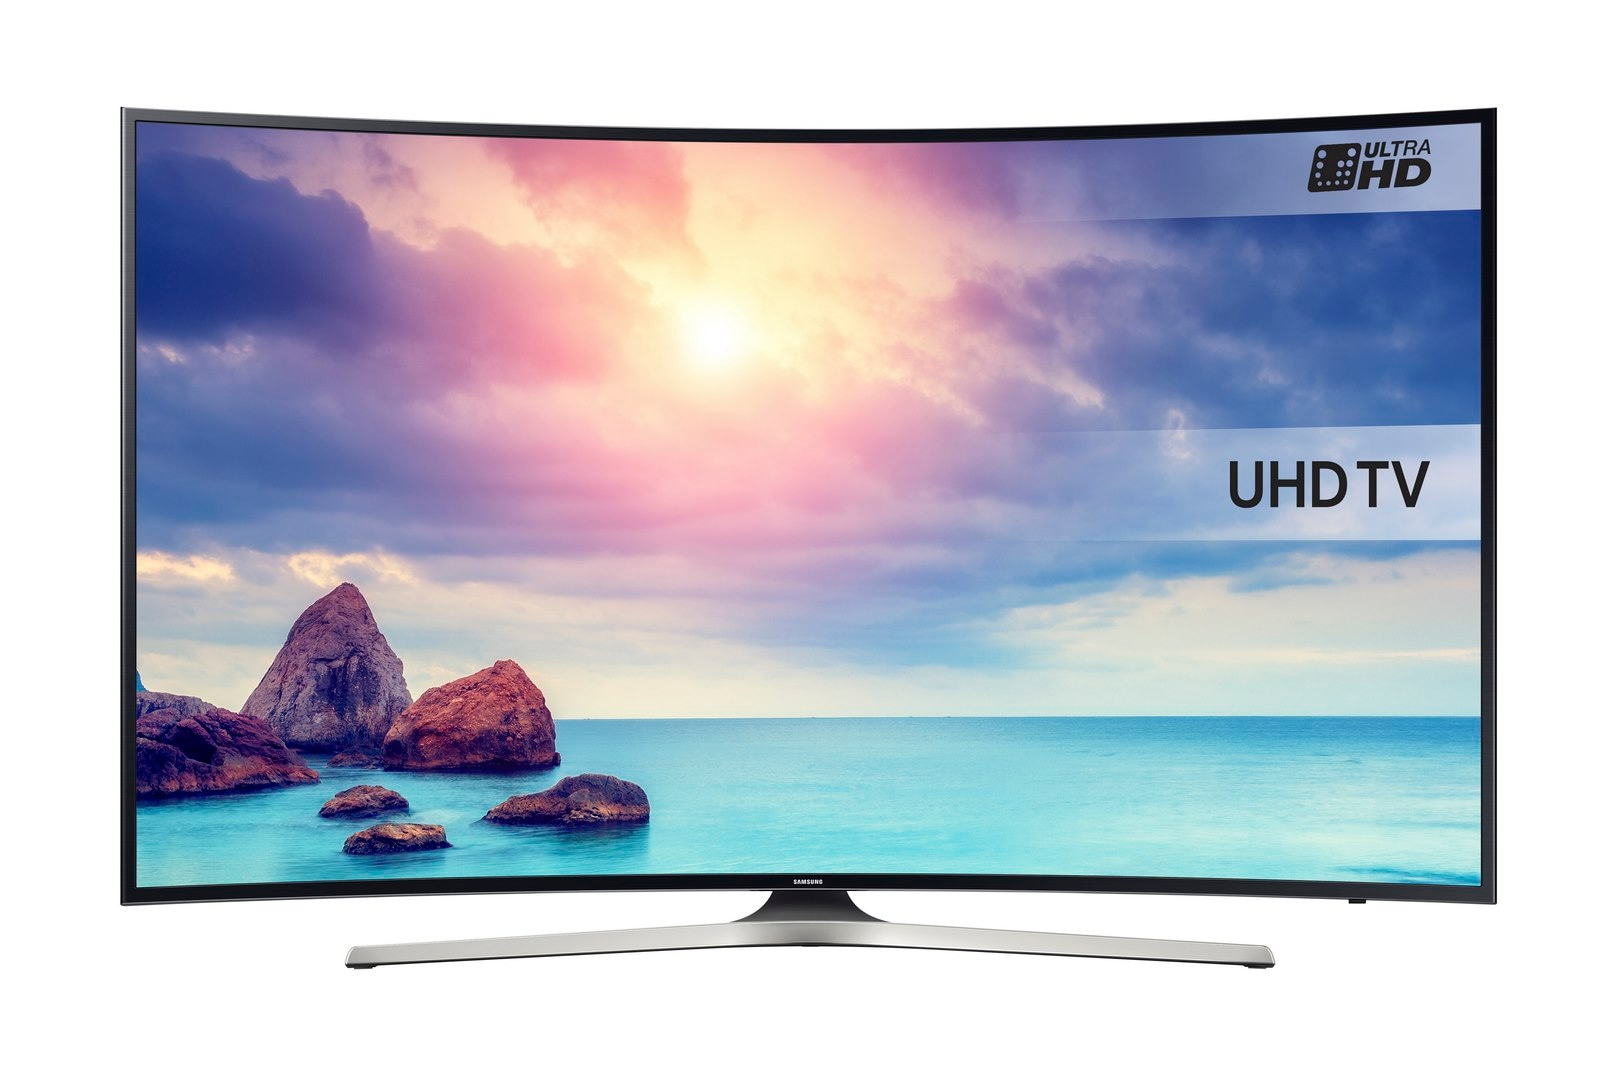 6-Series Curved UHD TV UE65KU6100